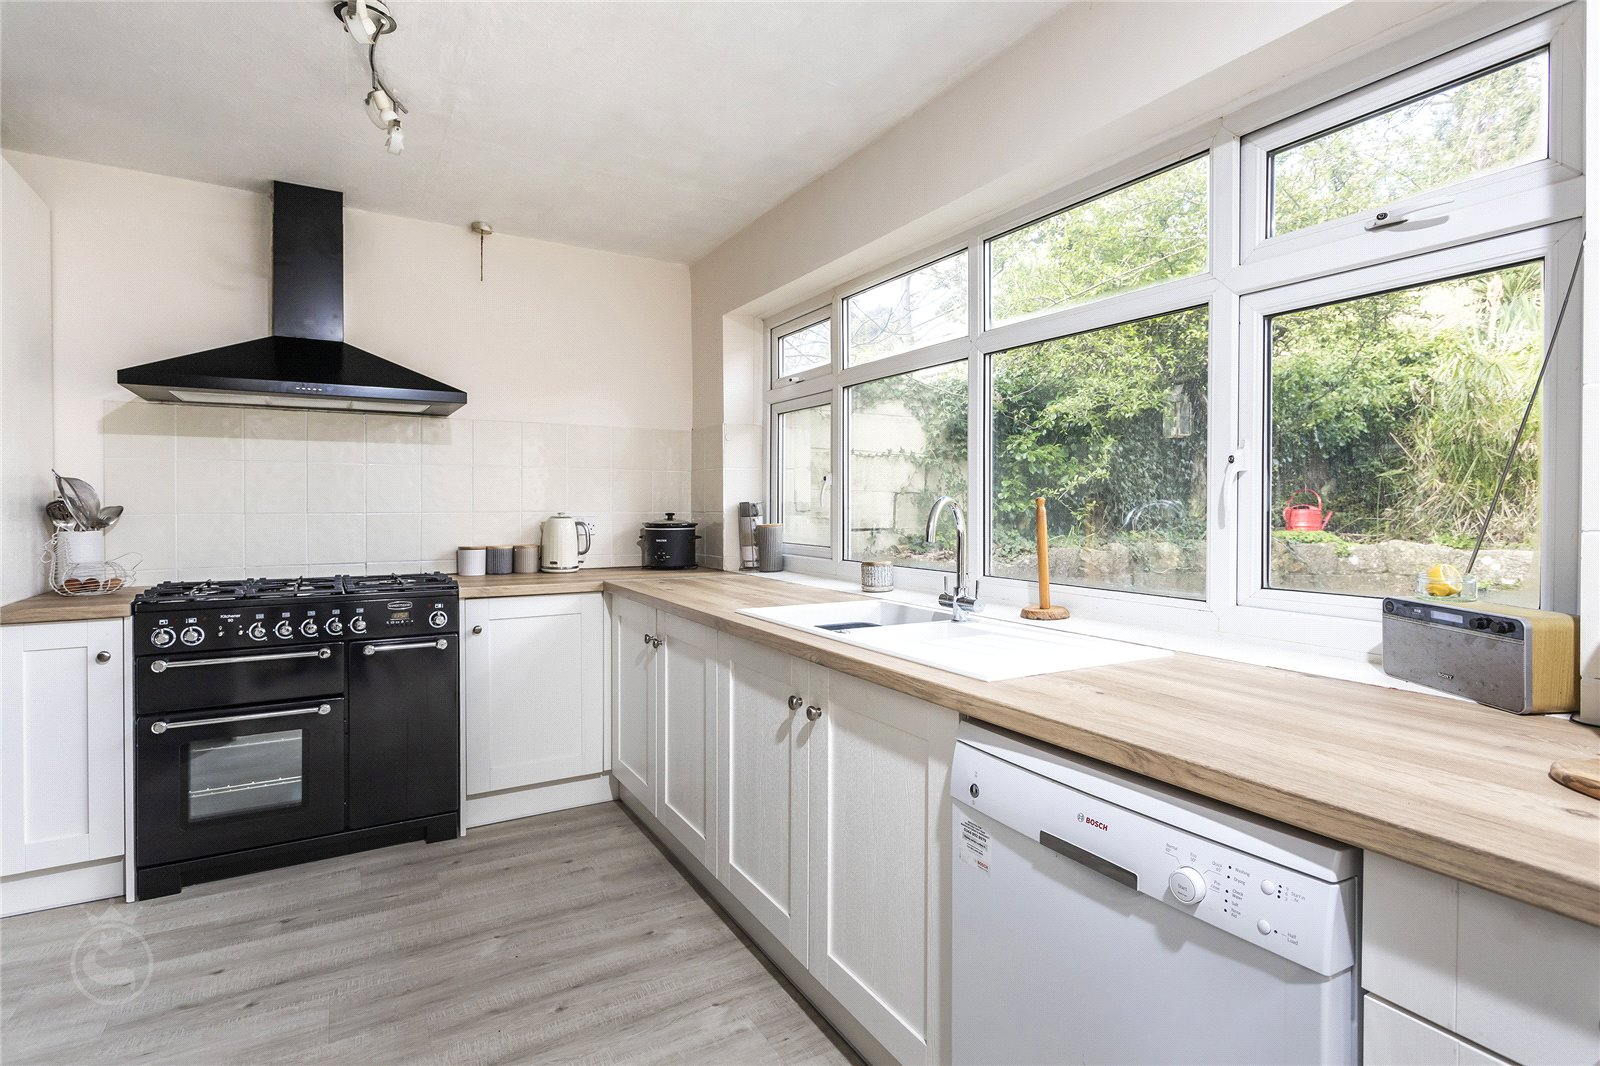 3 bed house for sale in Lower Parkstone, BH14